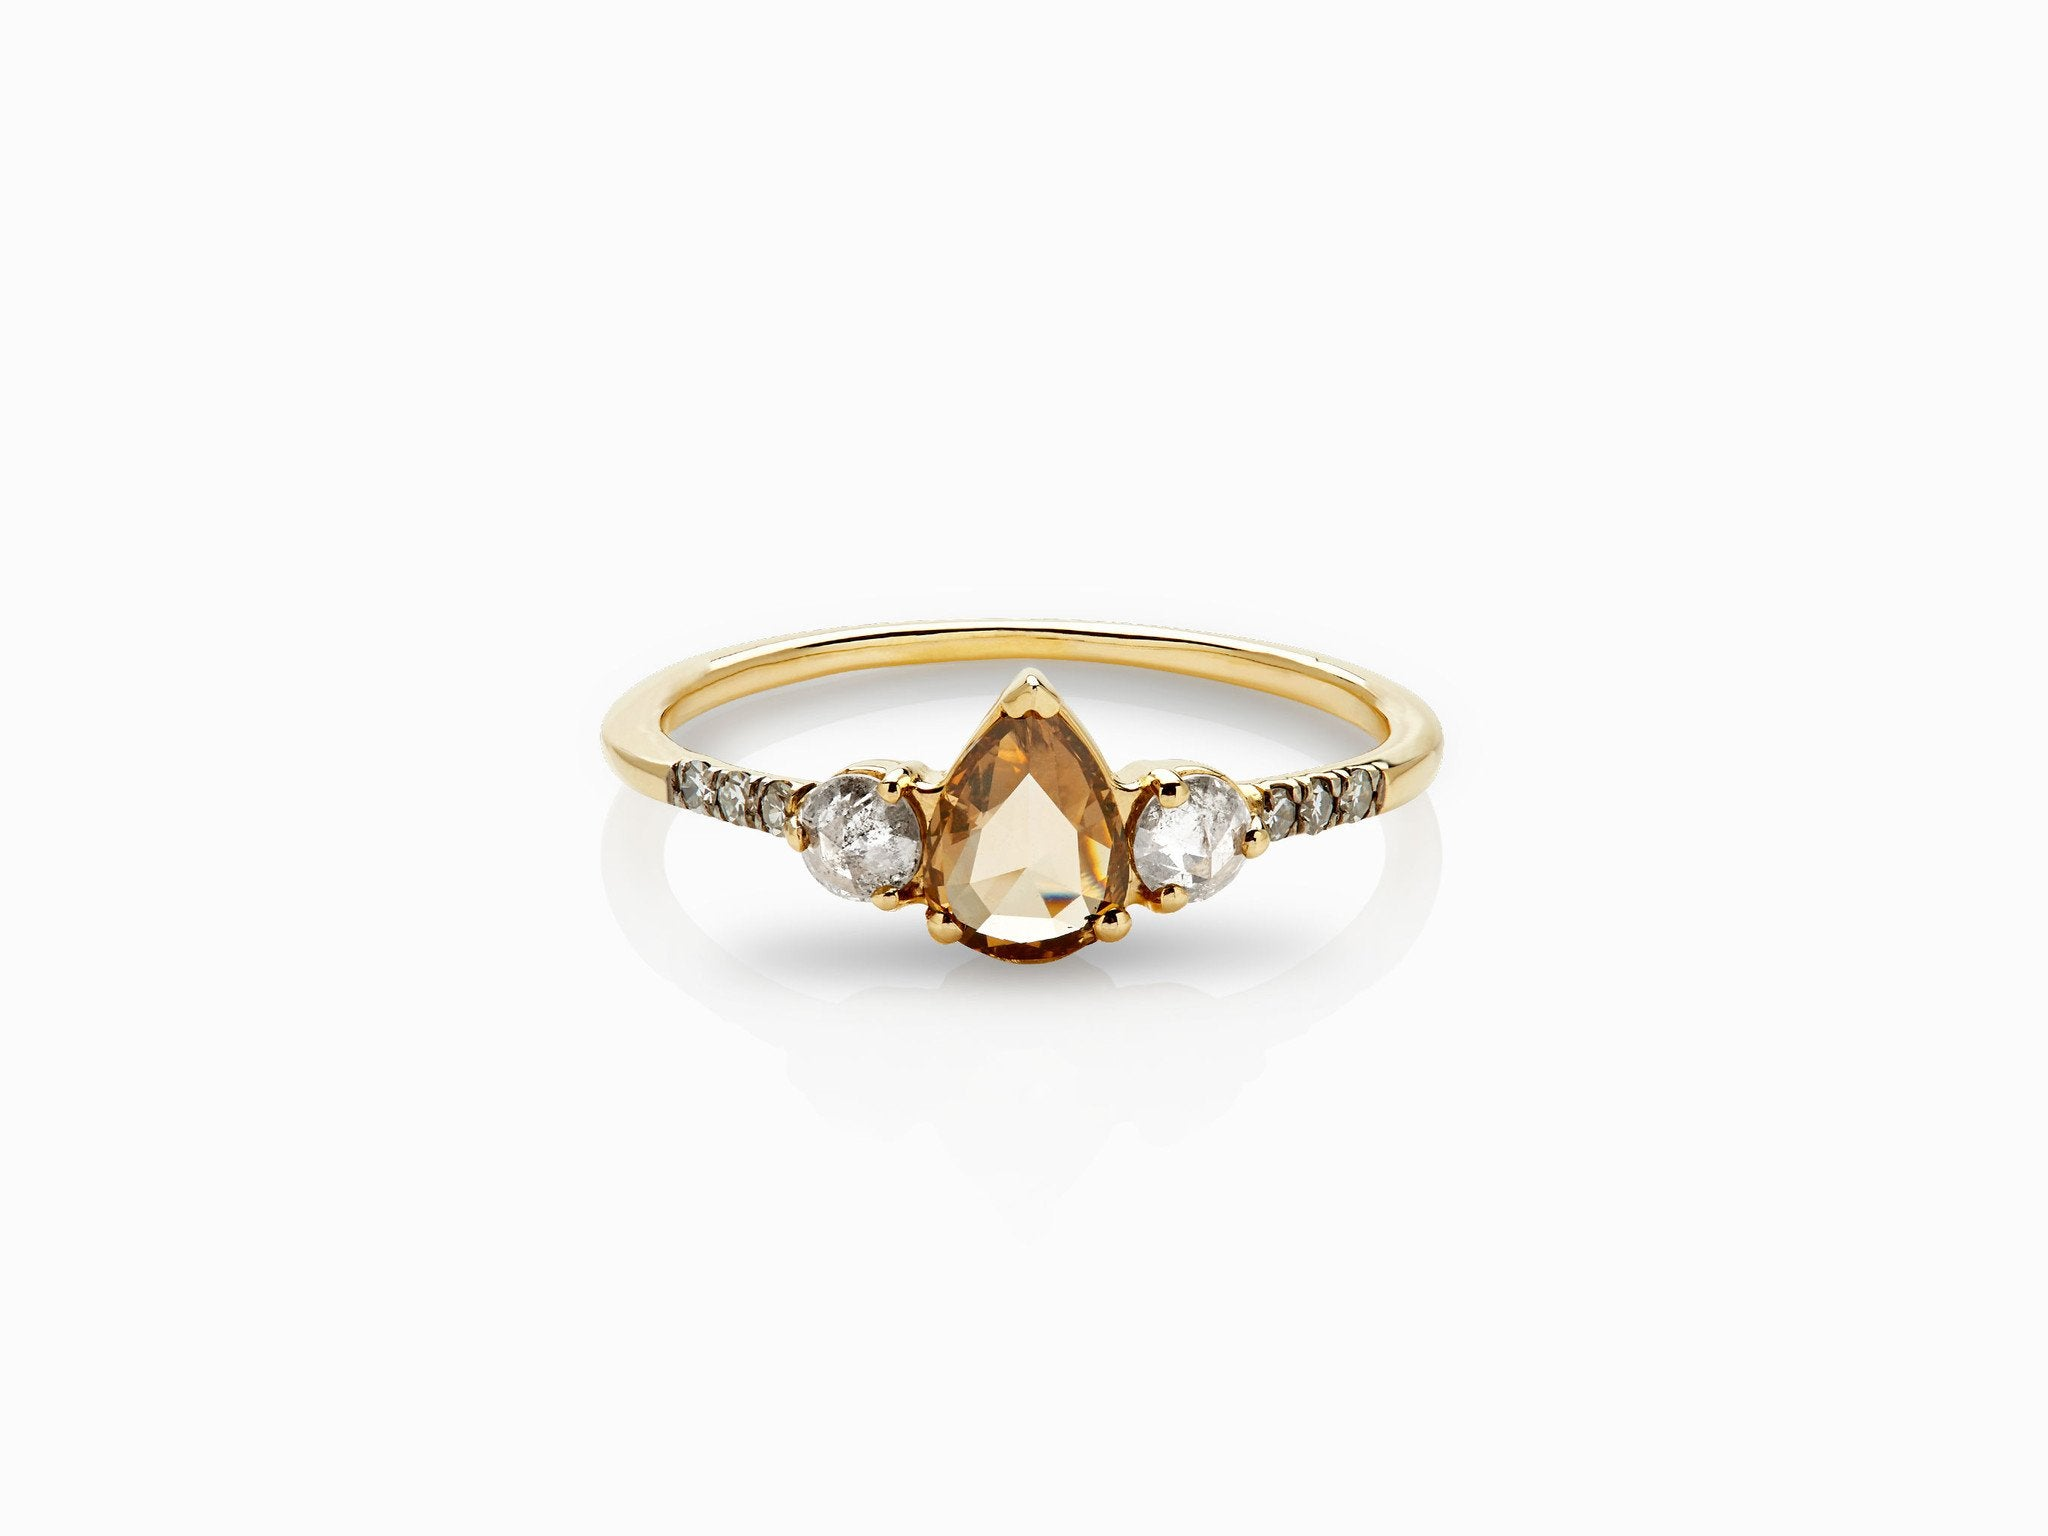 Radiance Ring - In Store Now